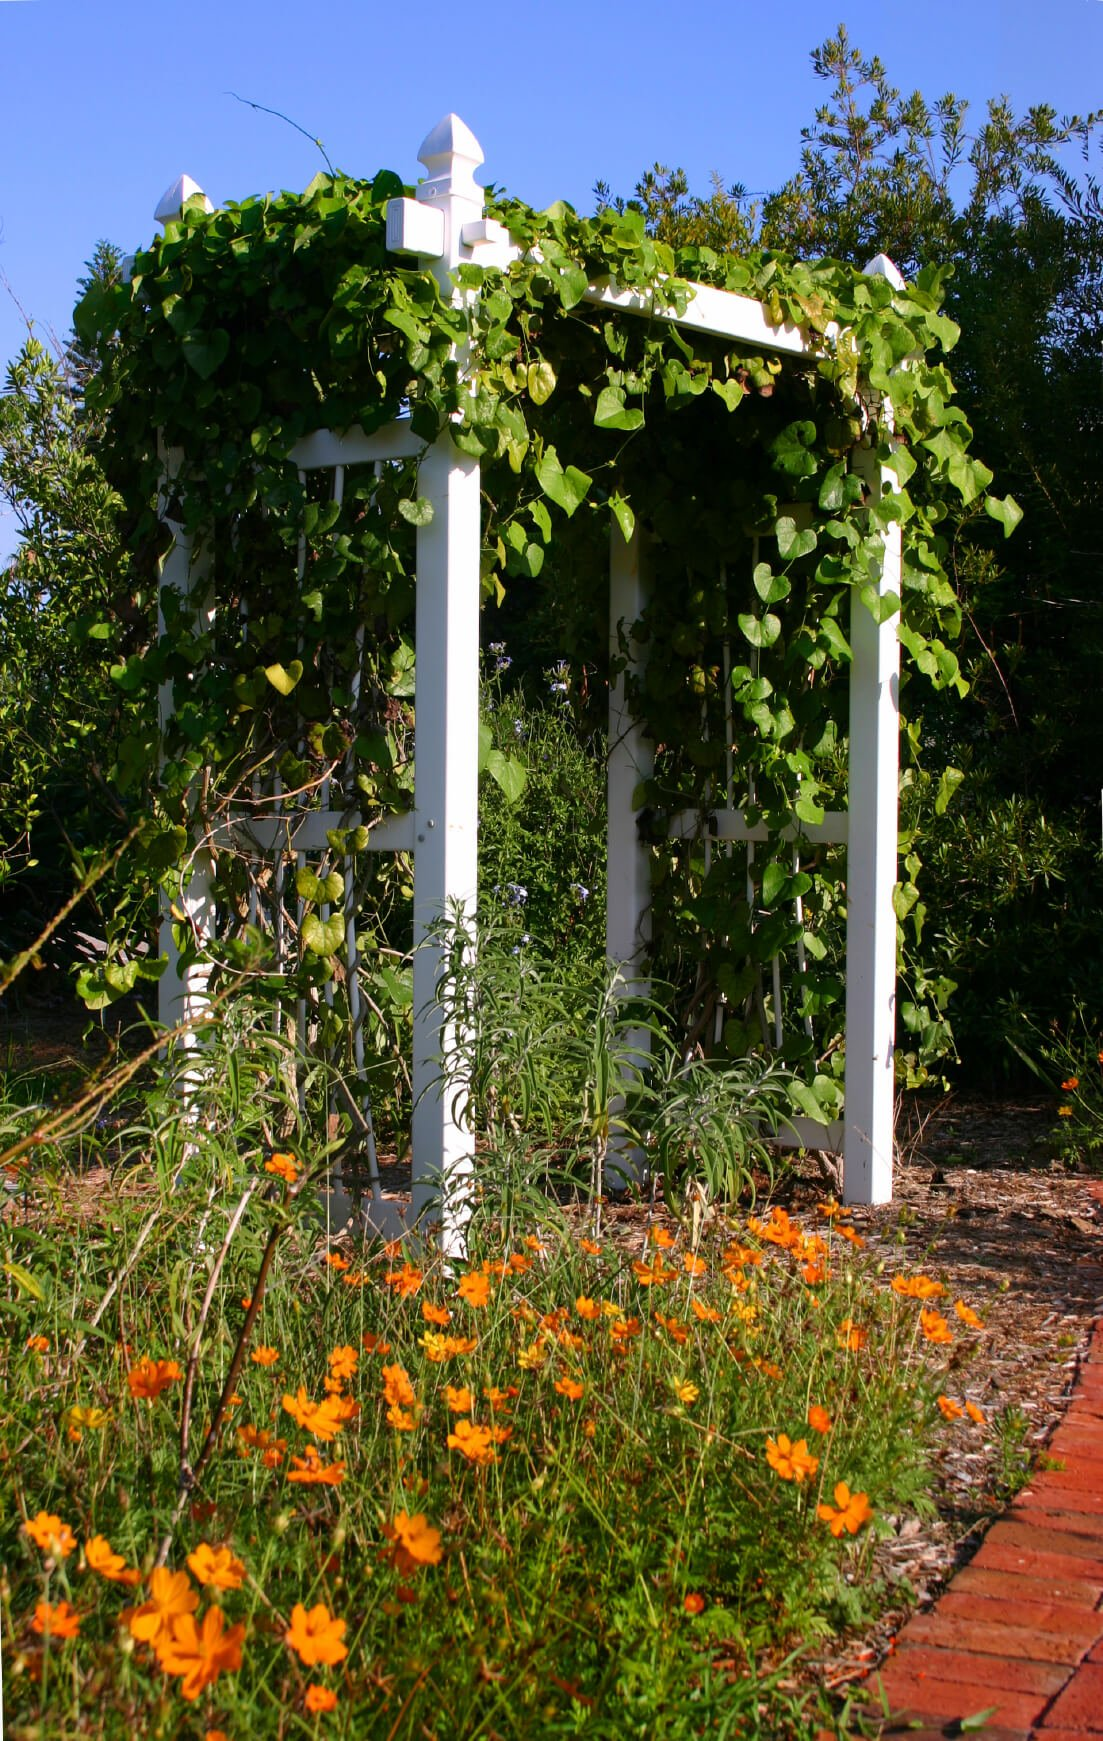 A white, wooden trellis is covered in morning glories.